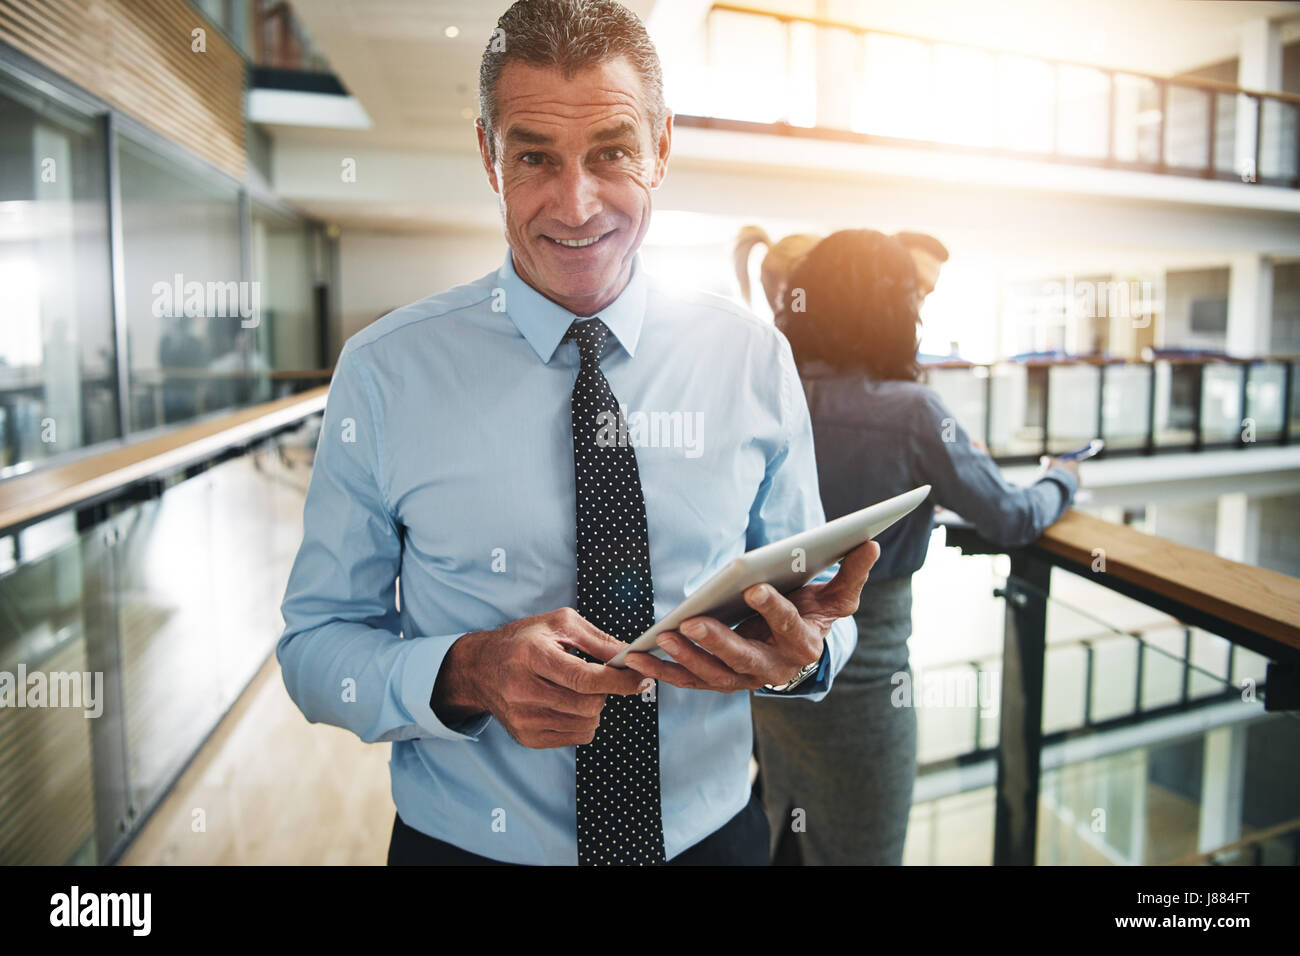 Handsome young office worker standing with tablet and looking at camera. Photo Stock